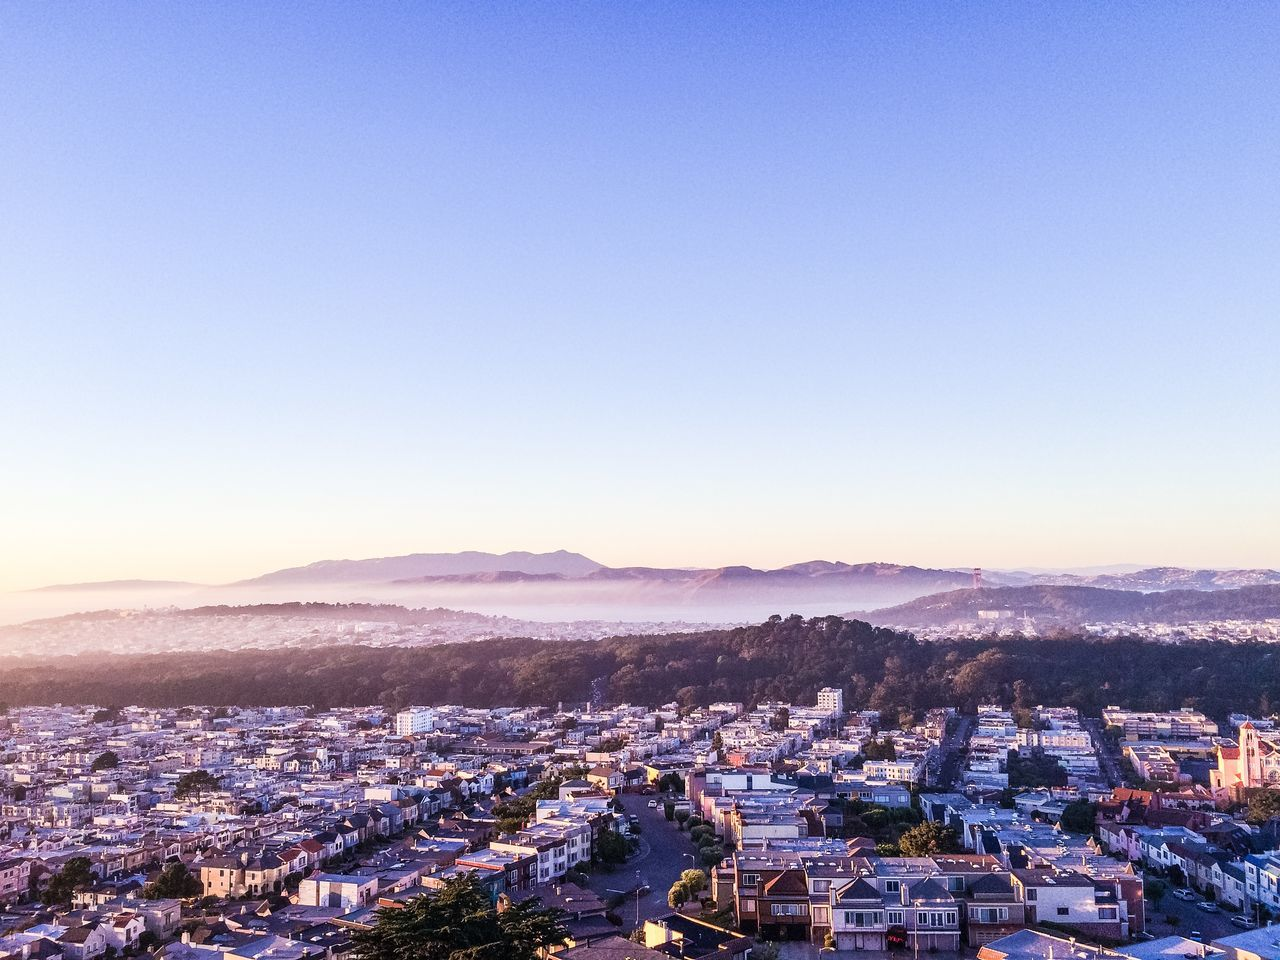 City San Francisco SF Sunset Sunset District Golden Gate Park Grand View Park サンフランシスコ 住宅街 カリフォルニア アメリカ Fog